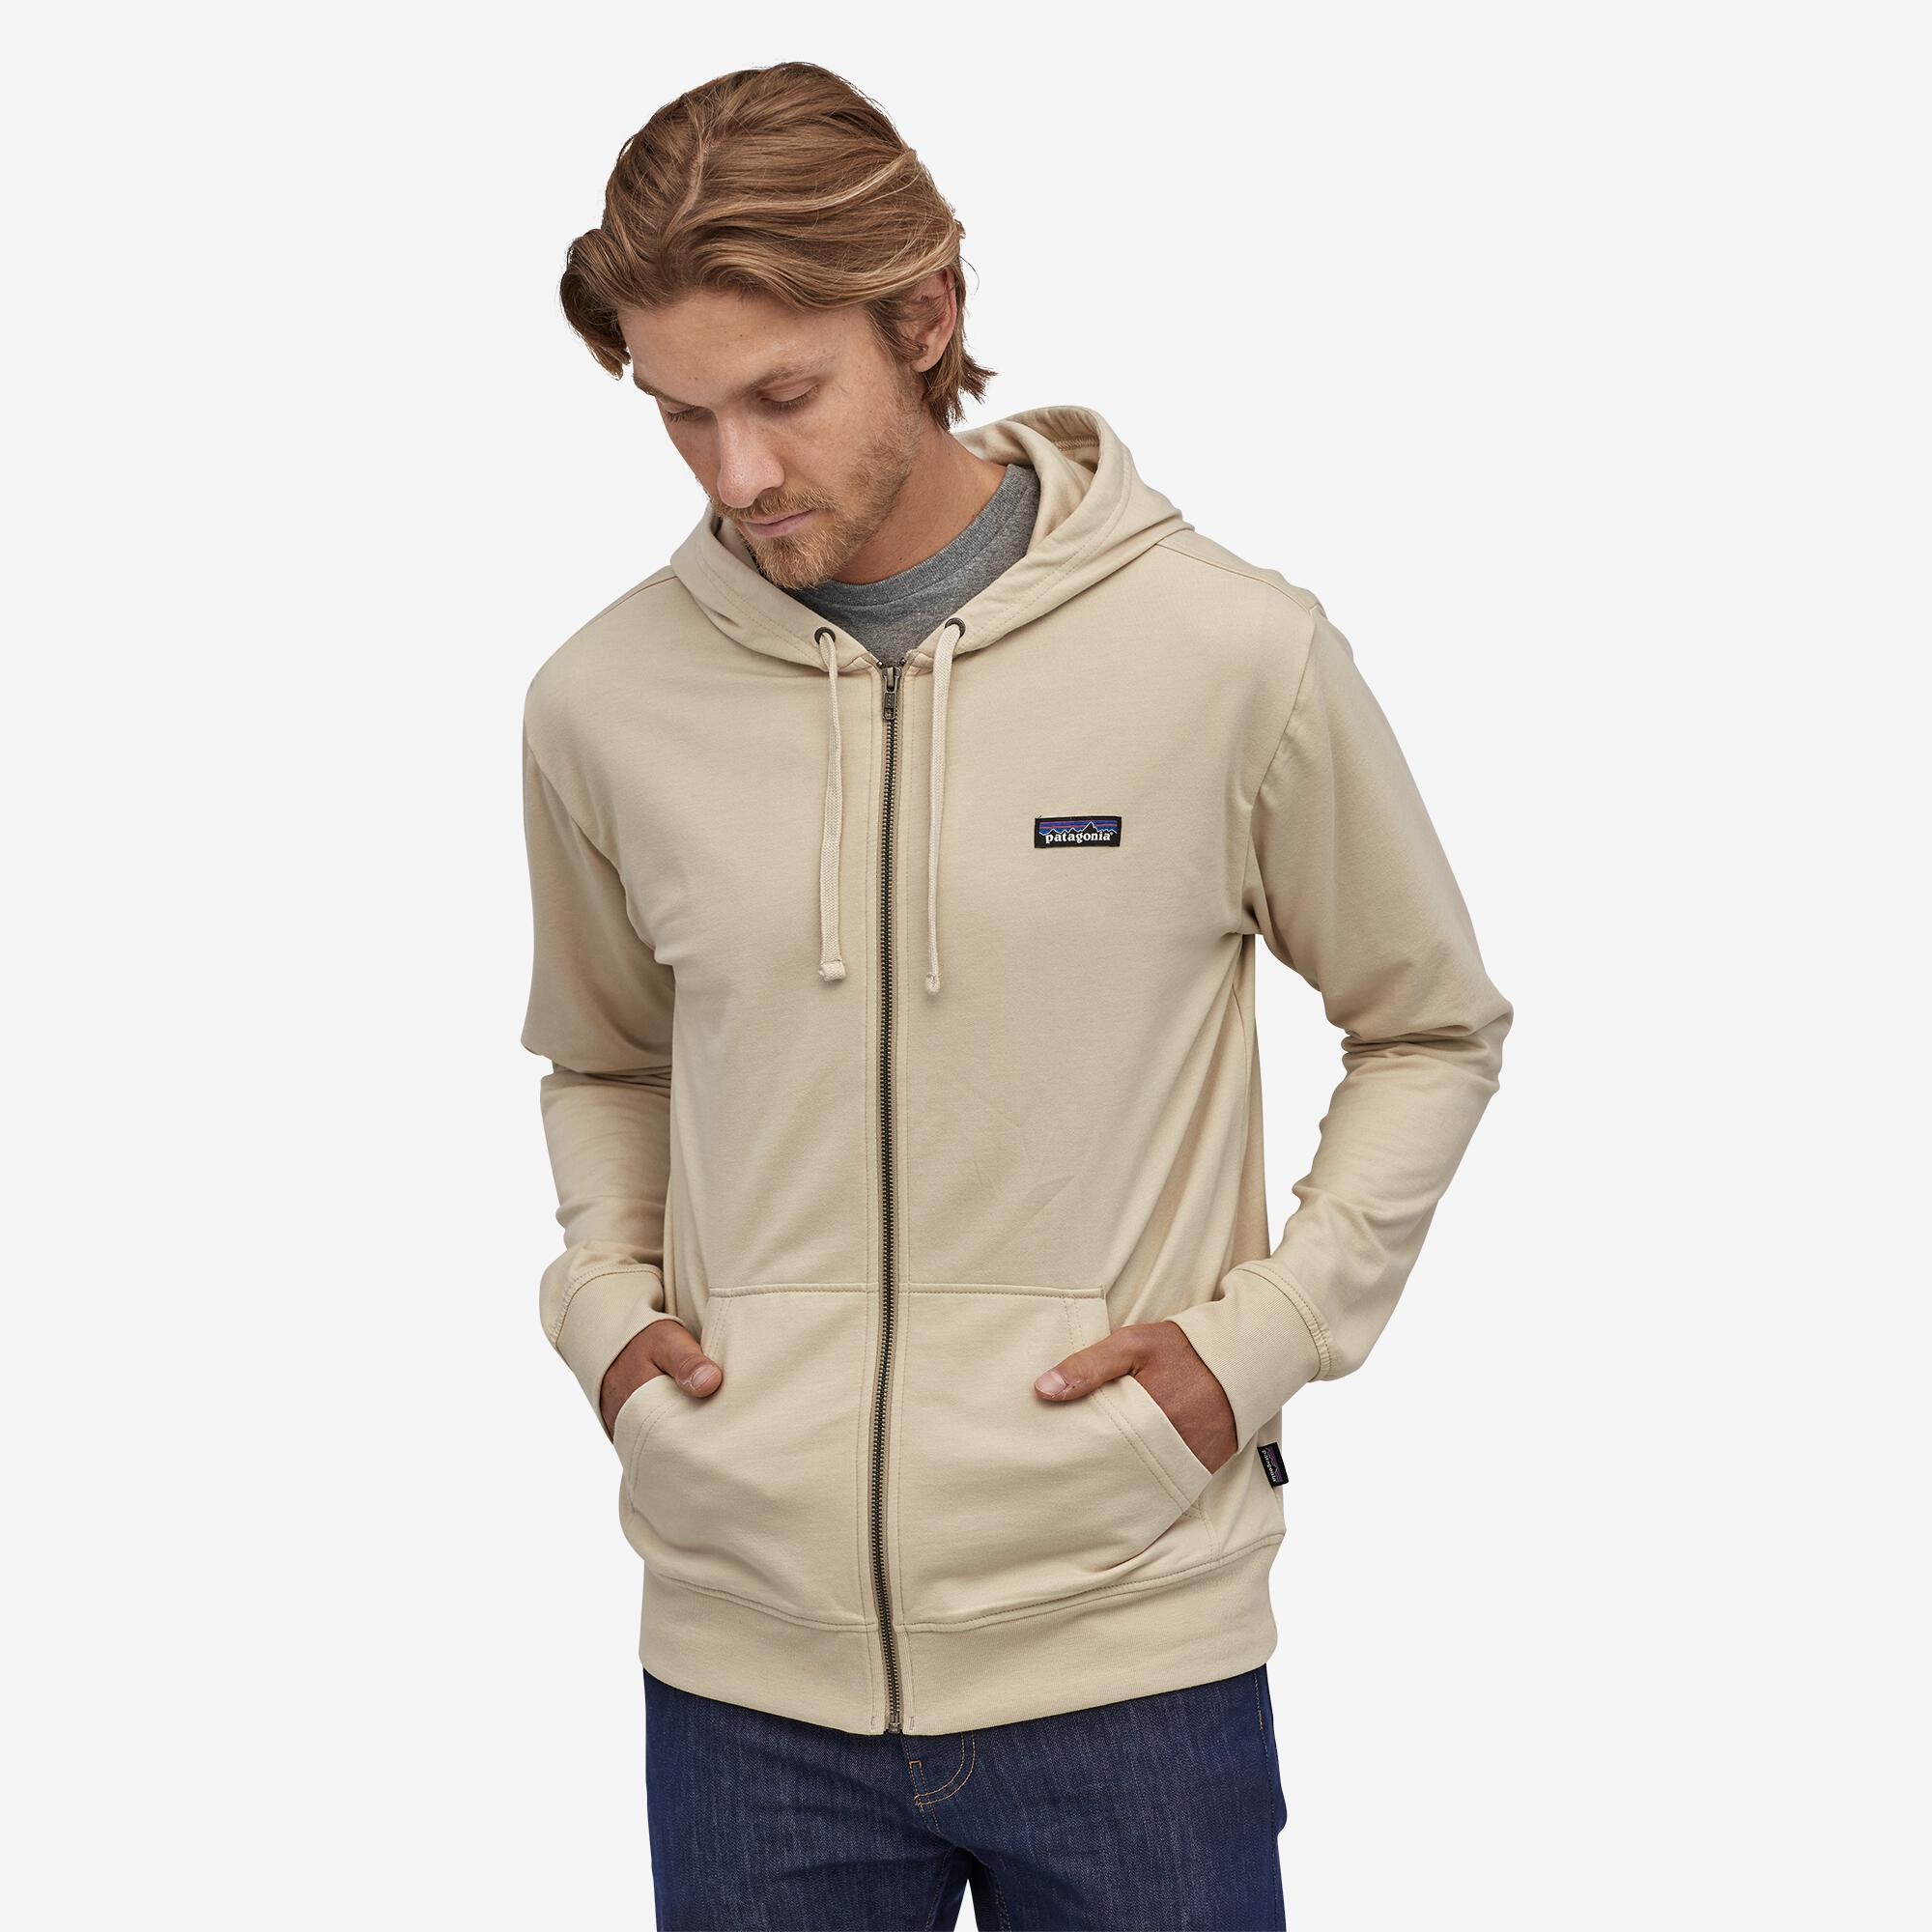 Patagonia - M's P-6 Label Lightweight Full-Zip Hoody - Weekendbee - sustainable sportswear